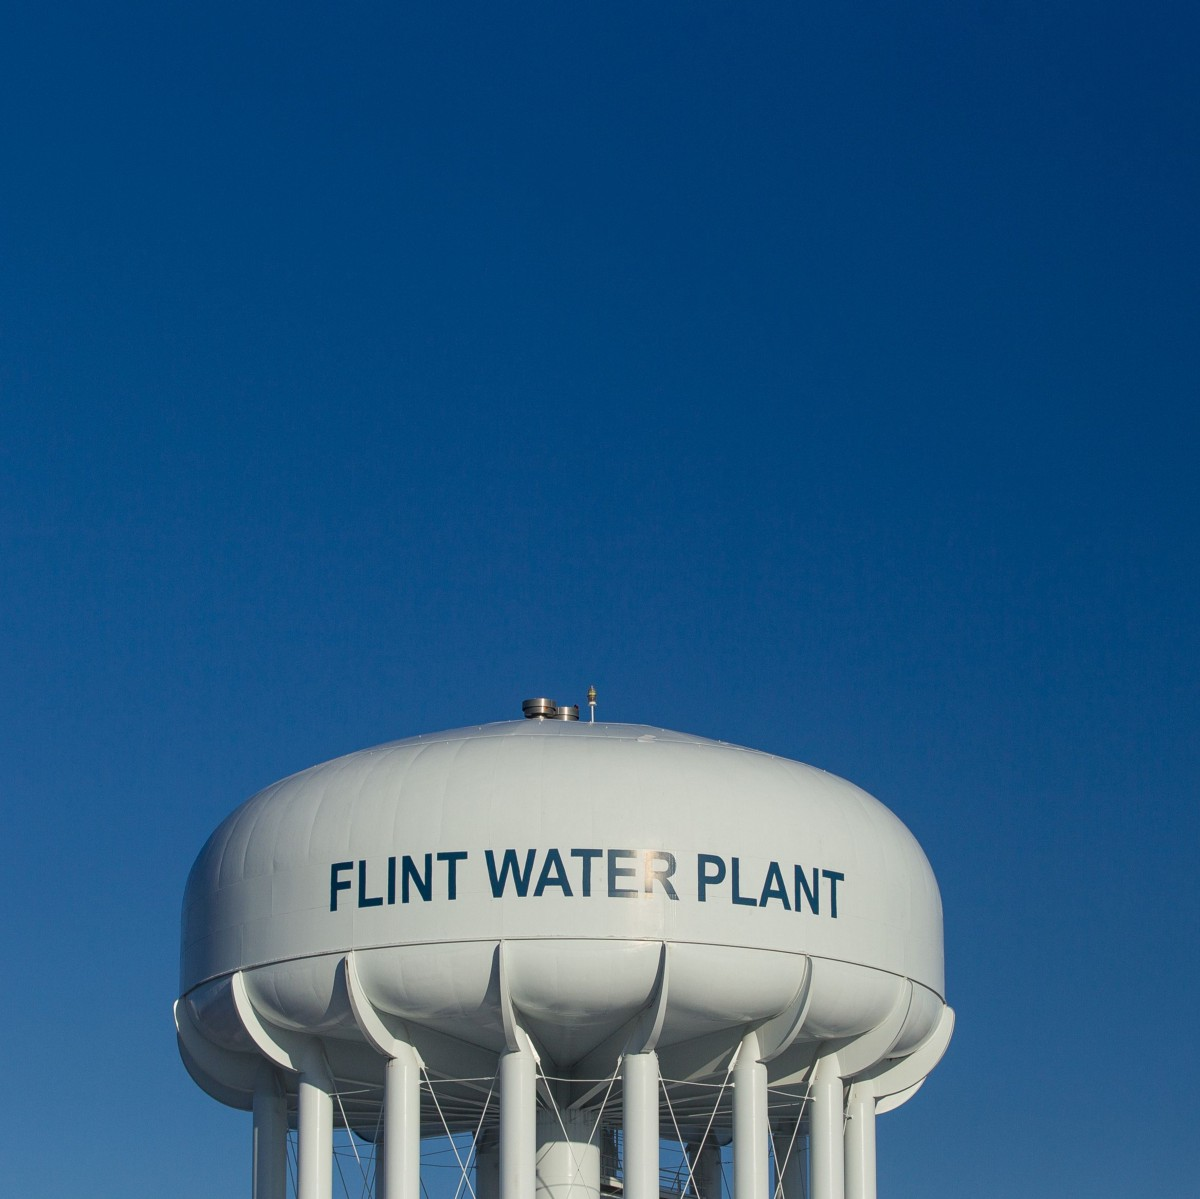 How the Passive Voice Allowed Flint's Water Crisis to Persist